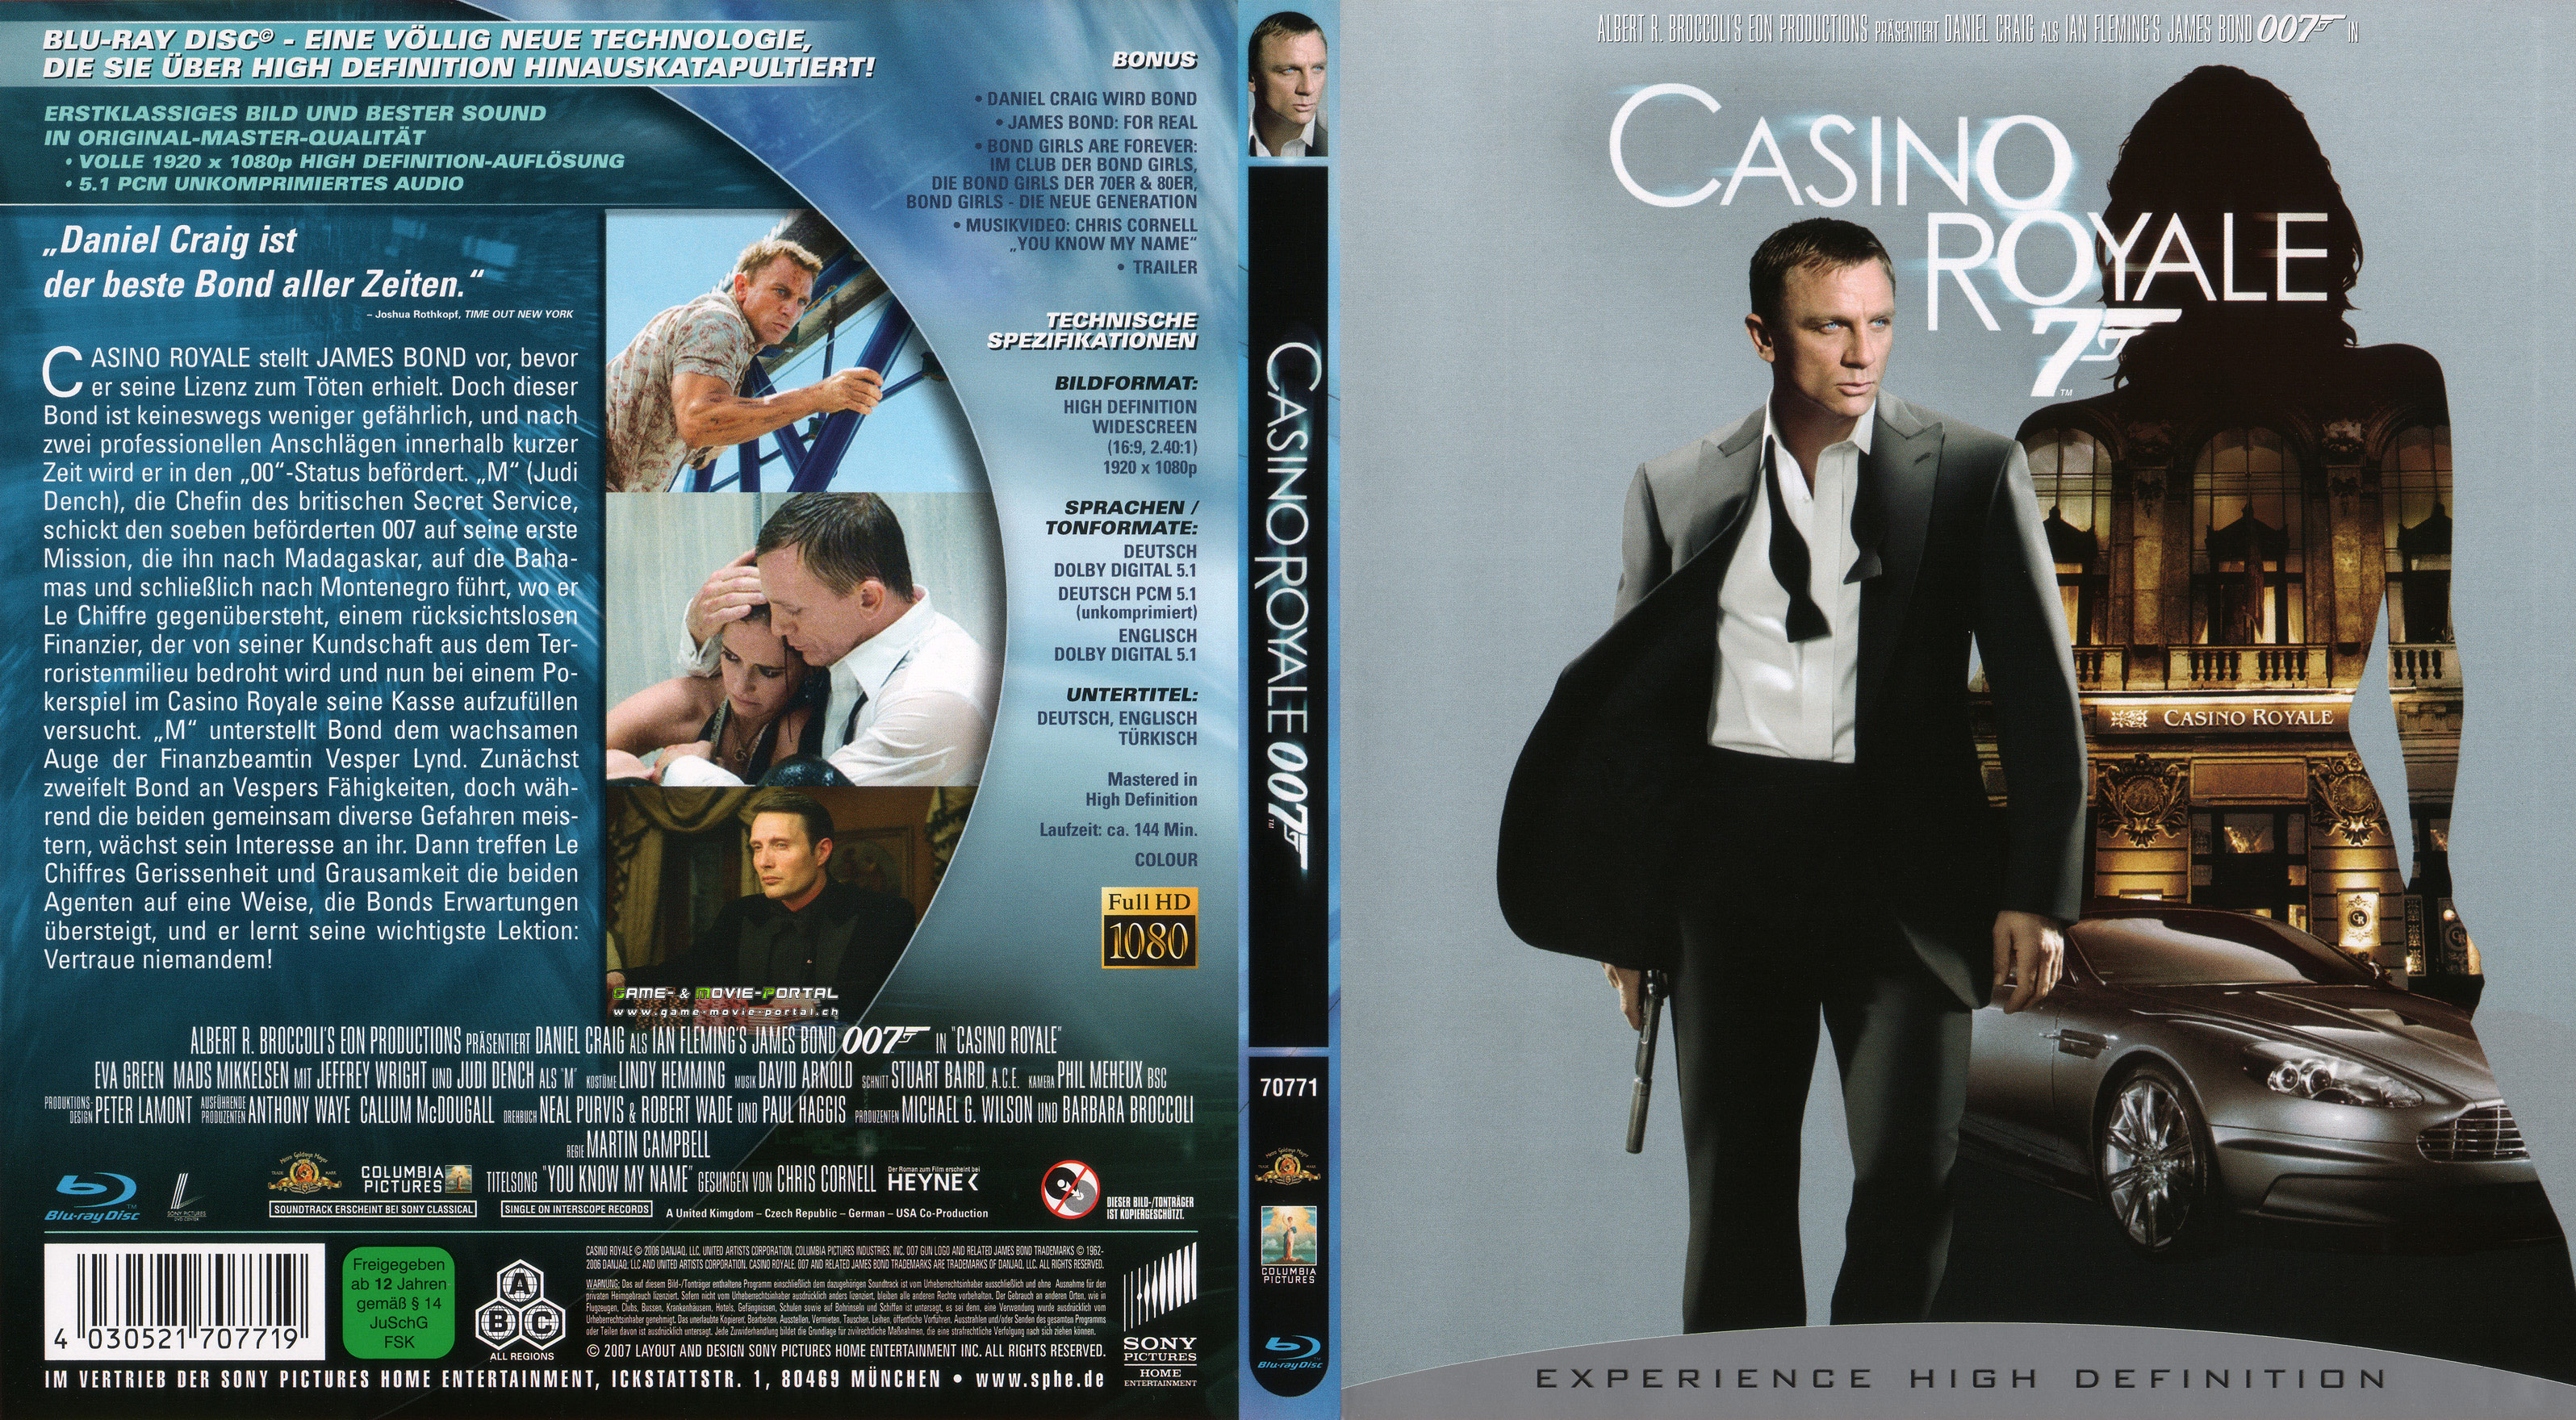 casino royale bösewicht